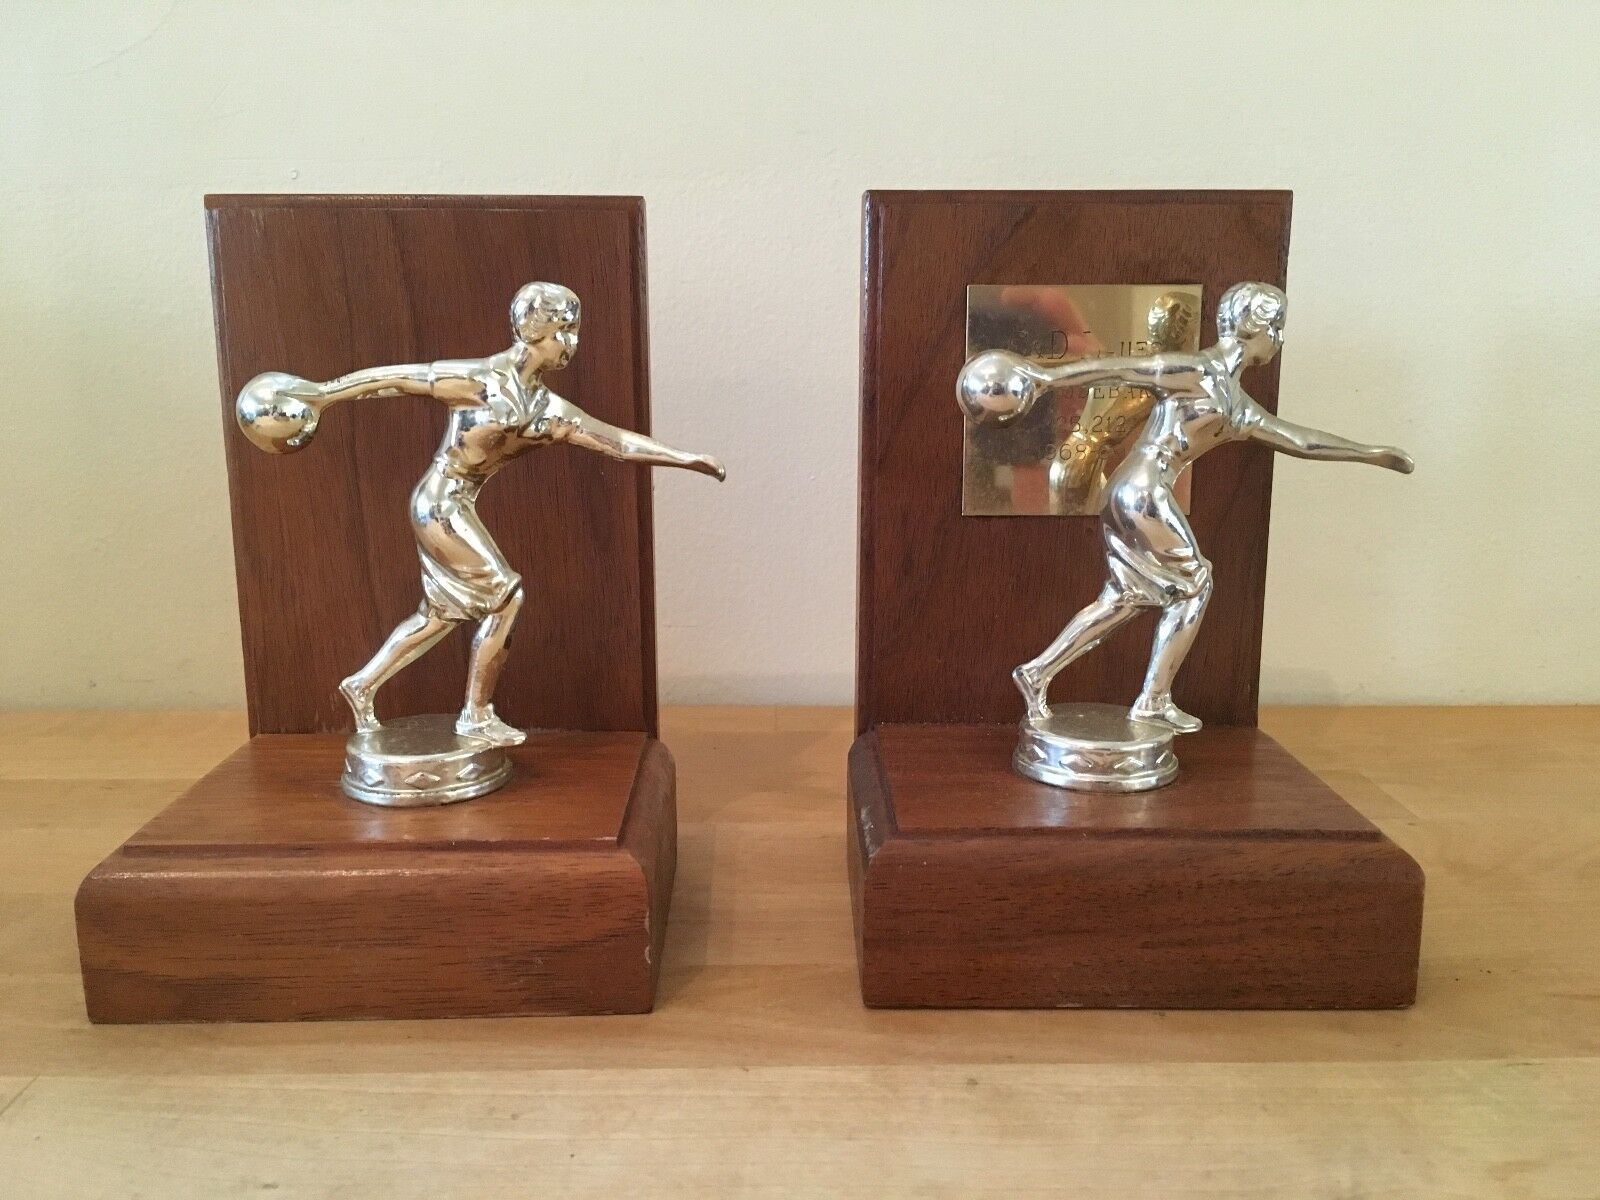 """""""Pair Of Vintage Women's Ladies Bowling Trophies 1968-69 Wooden Bookends 6"""""""" Tall"""""""